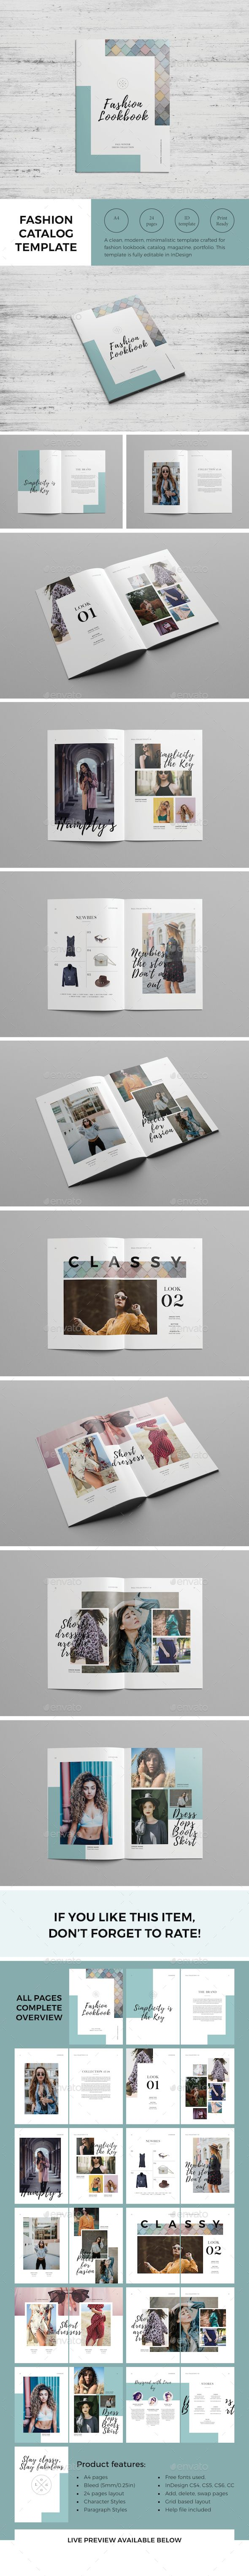 Fashion Catalog / Lookbook Template InDesign INDD - 24 Pages A4 + US Letter Size